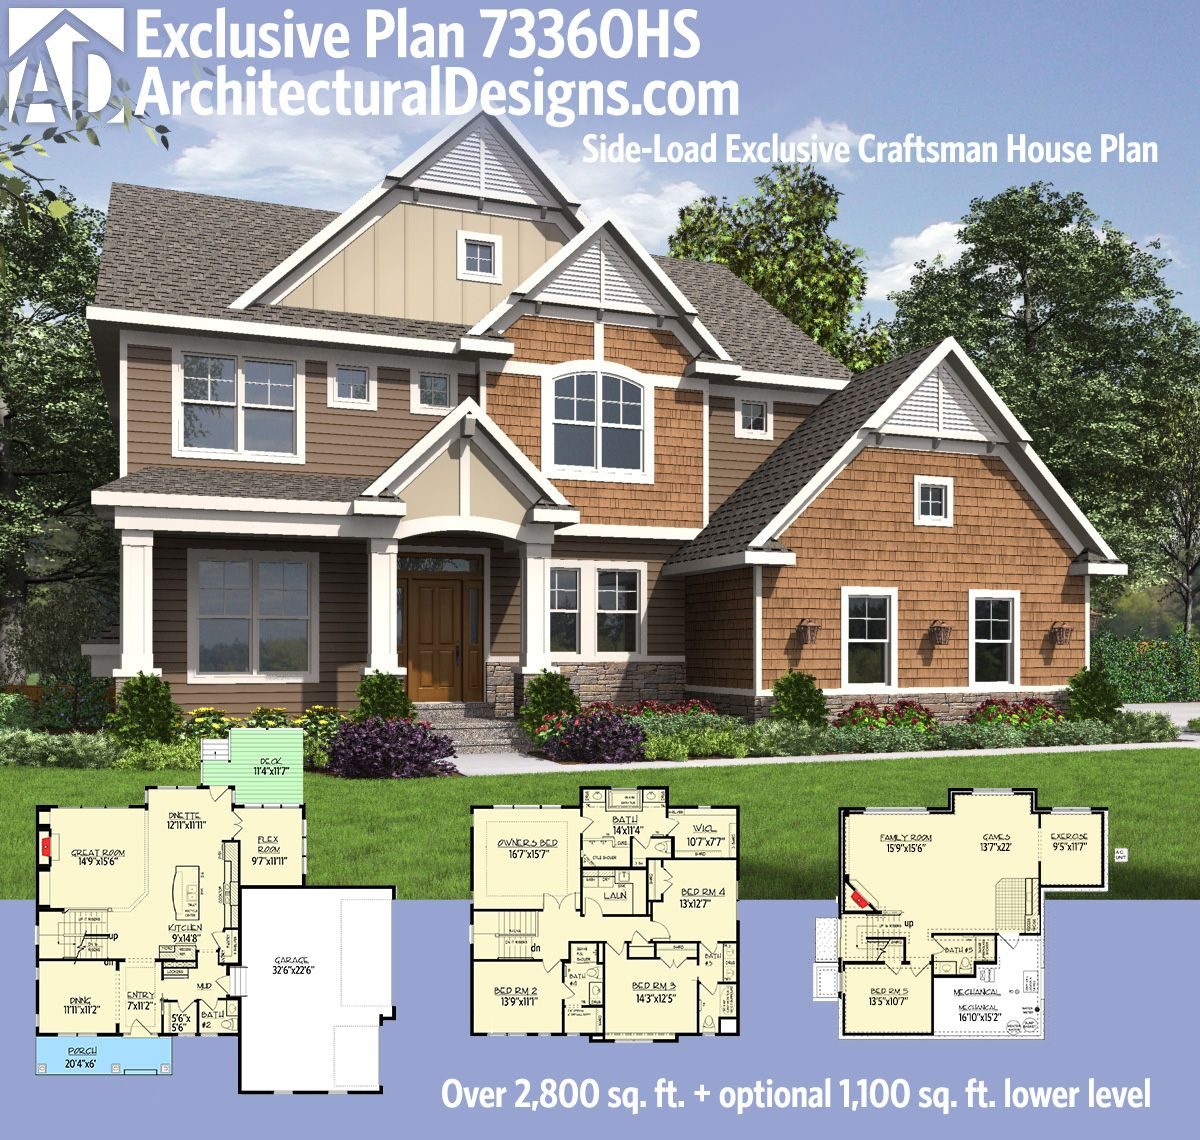 Architectural designs exclusive house plan 73360hs has a for 3 car side load garage